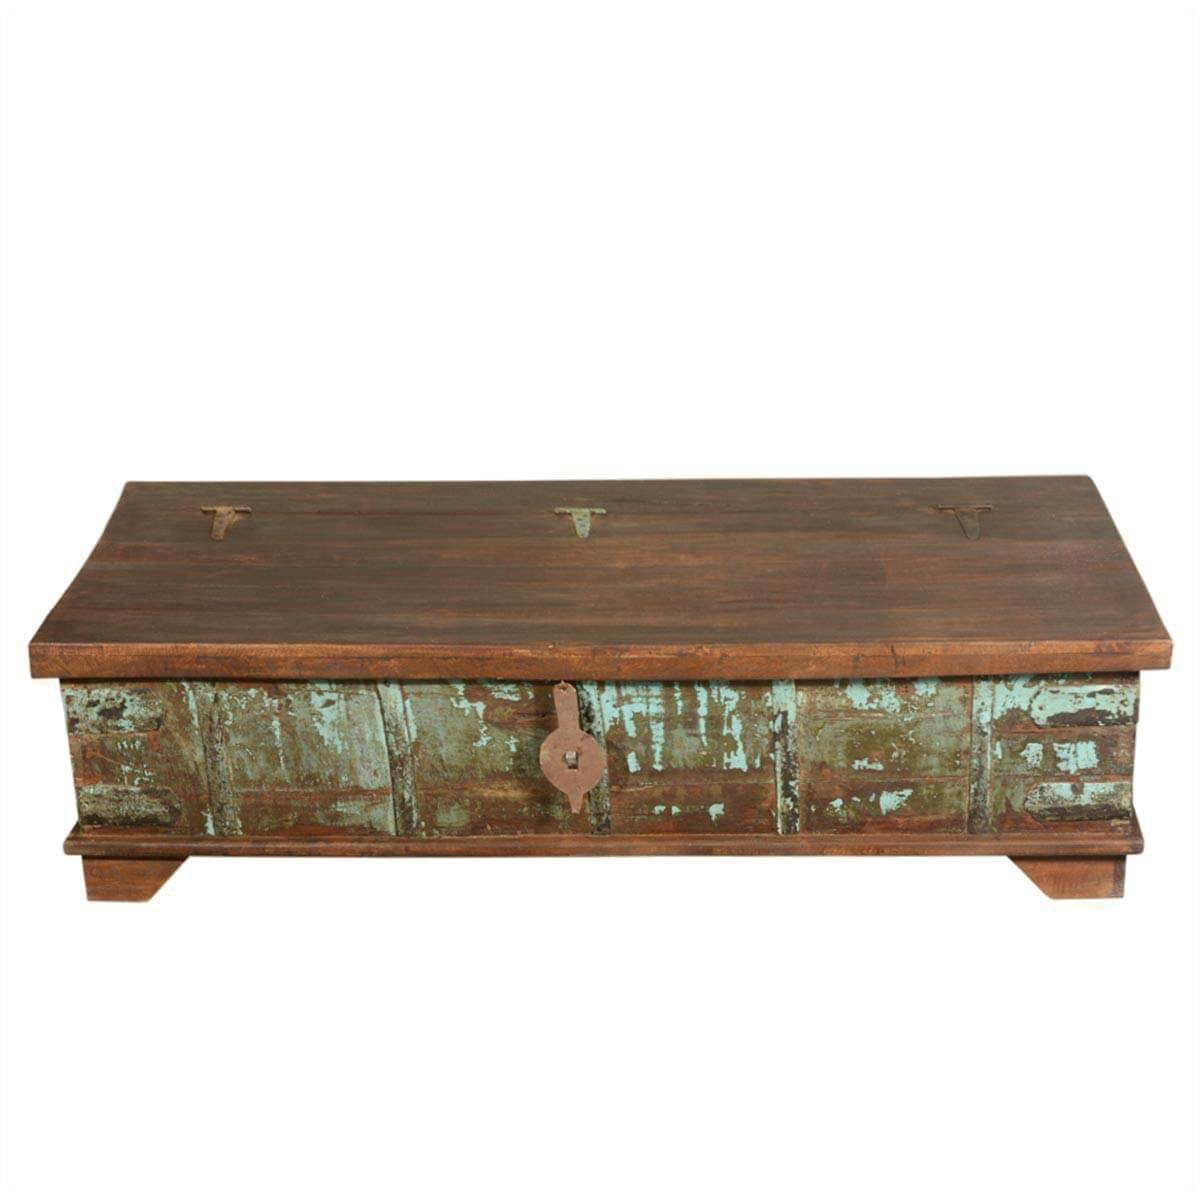 Mediterranean rustic reclaimed wood storage trunk coffee table Trunks coffee tables